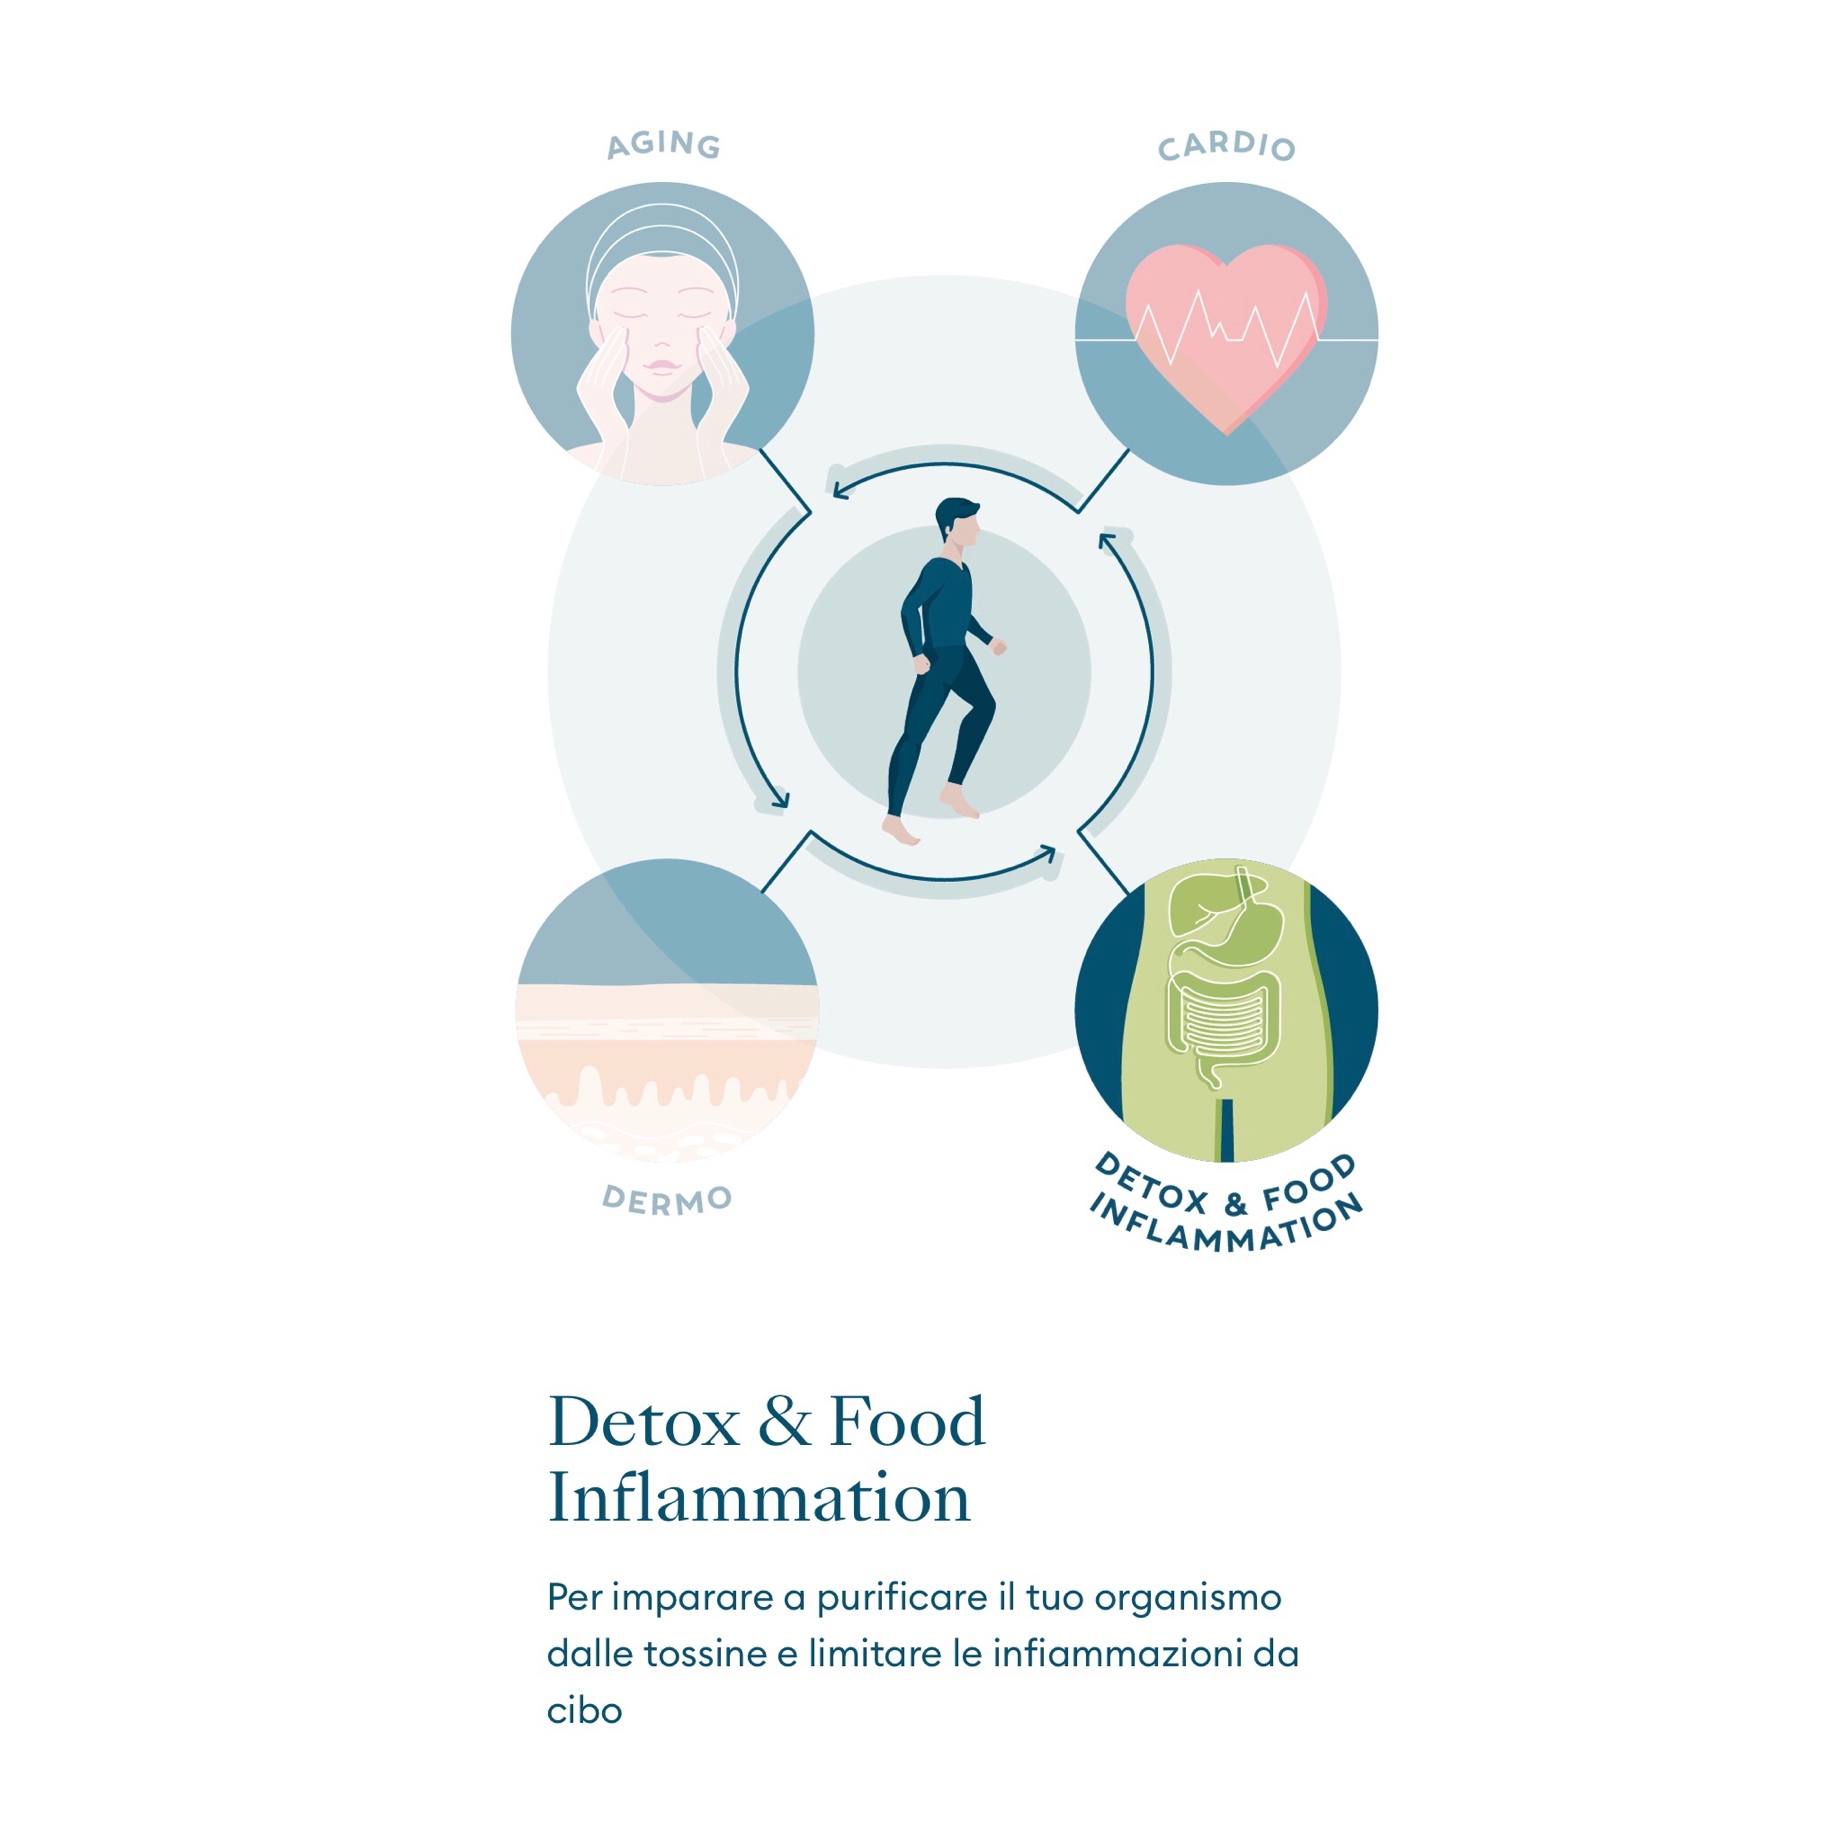 Detox&Food Inflamation